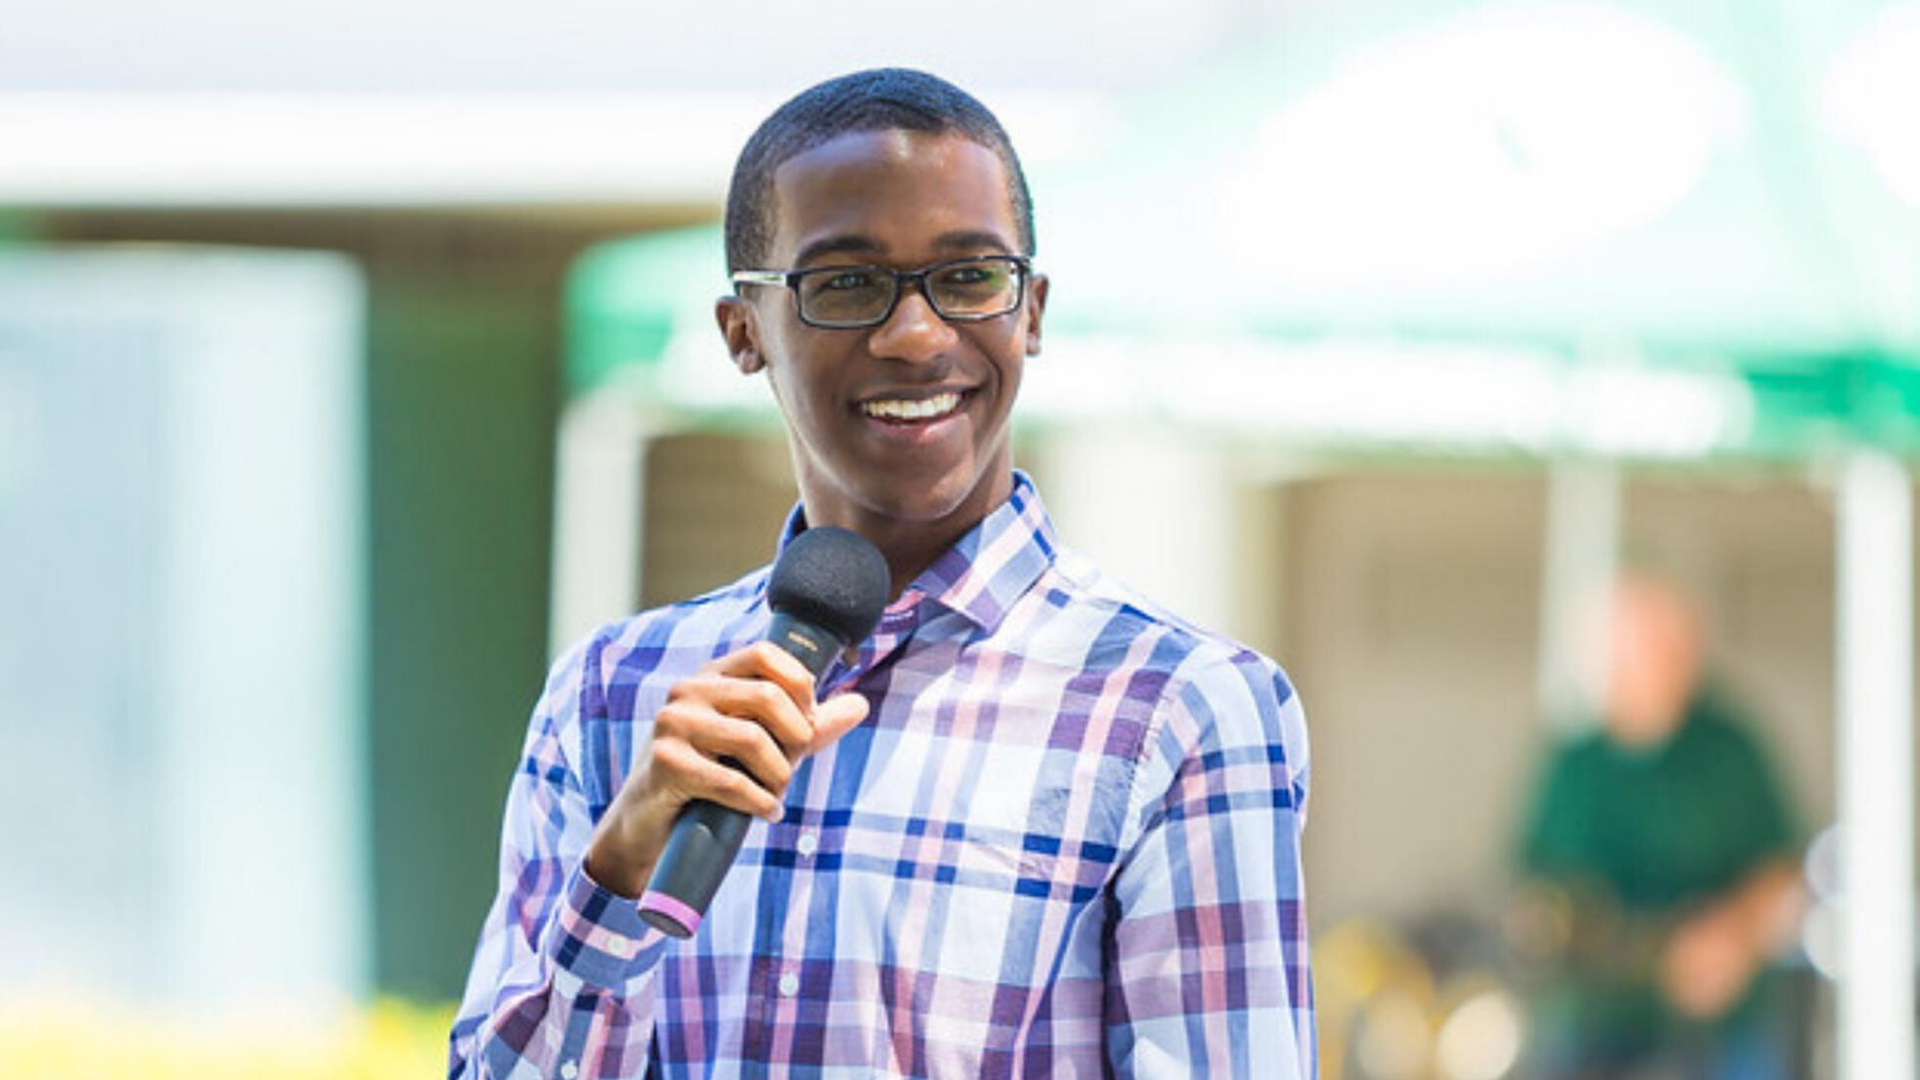 Cal Poly Pomona Associated Students Incorporated shared this photo of Uriah Sanders in a Facebook post on July 17, 2020.